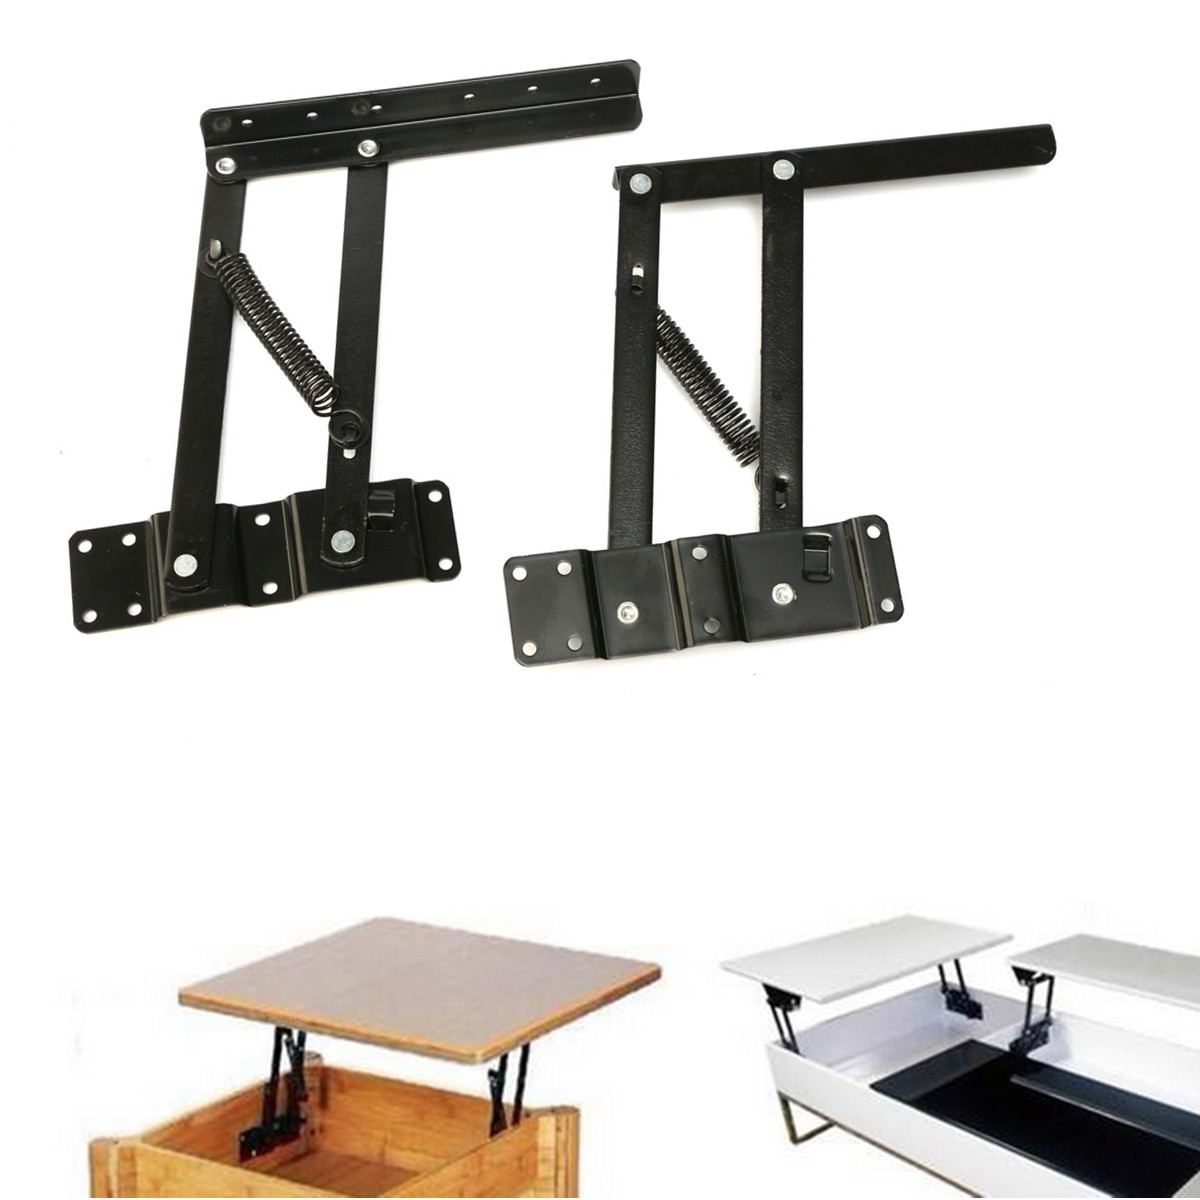 New Arrival Lift Up Coffee Table Desk Mechanism Diy Fitting Hardware Furniture Hinge Spring